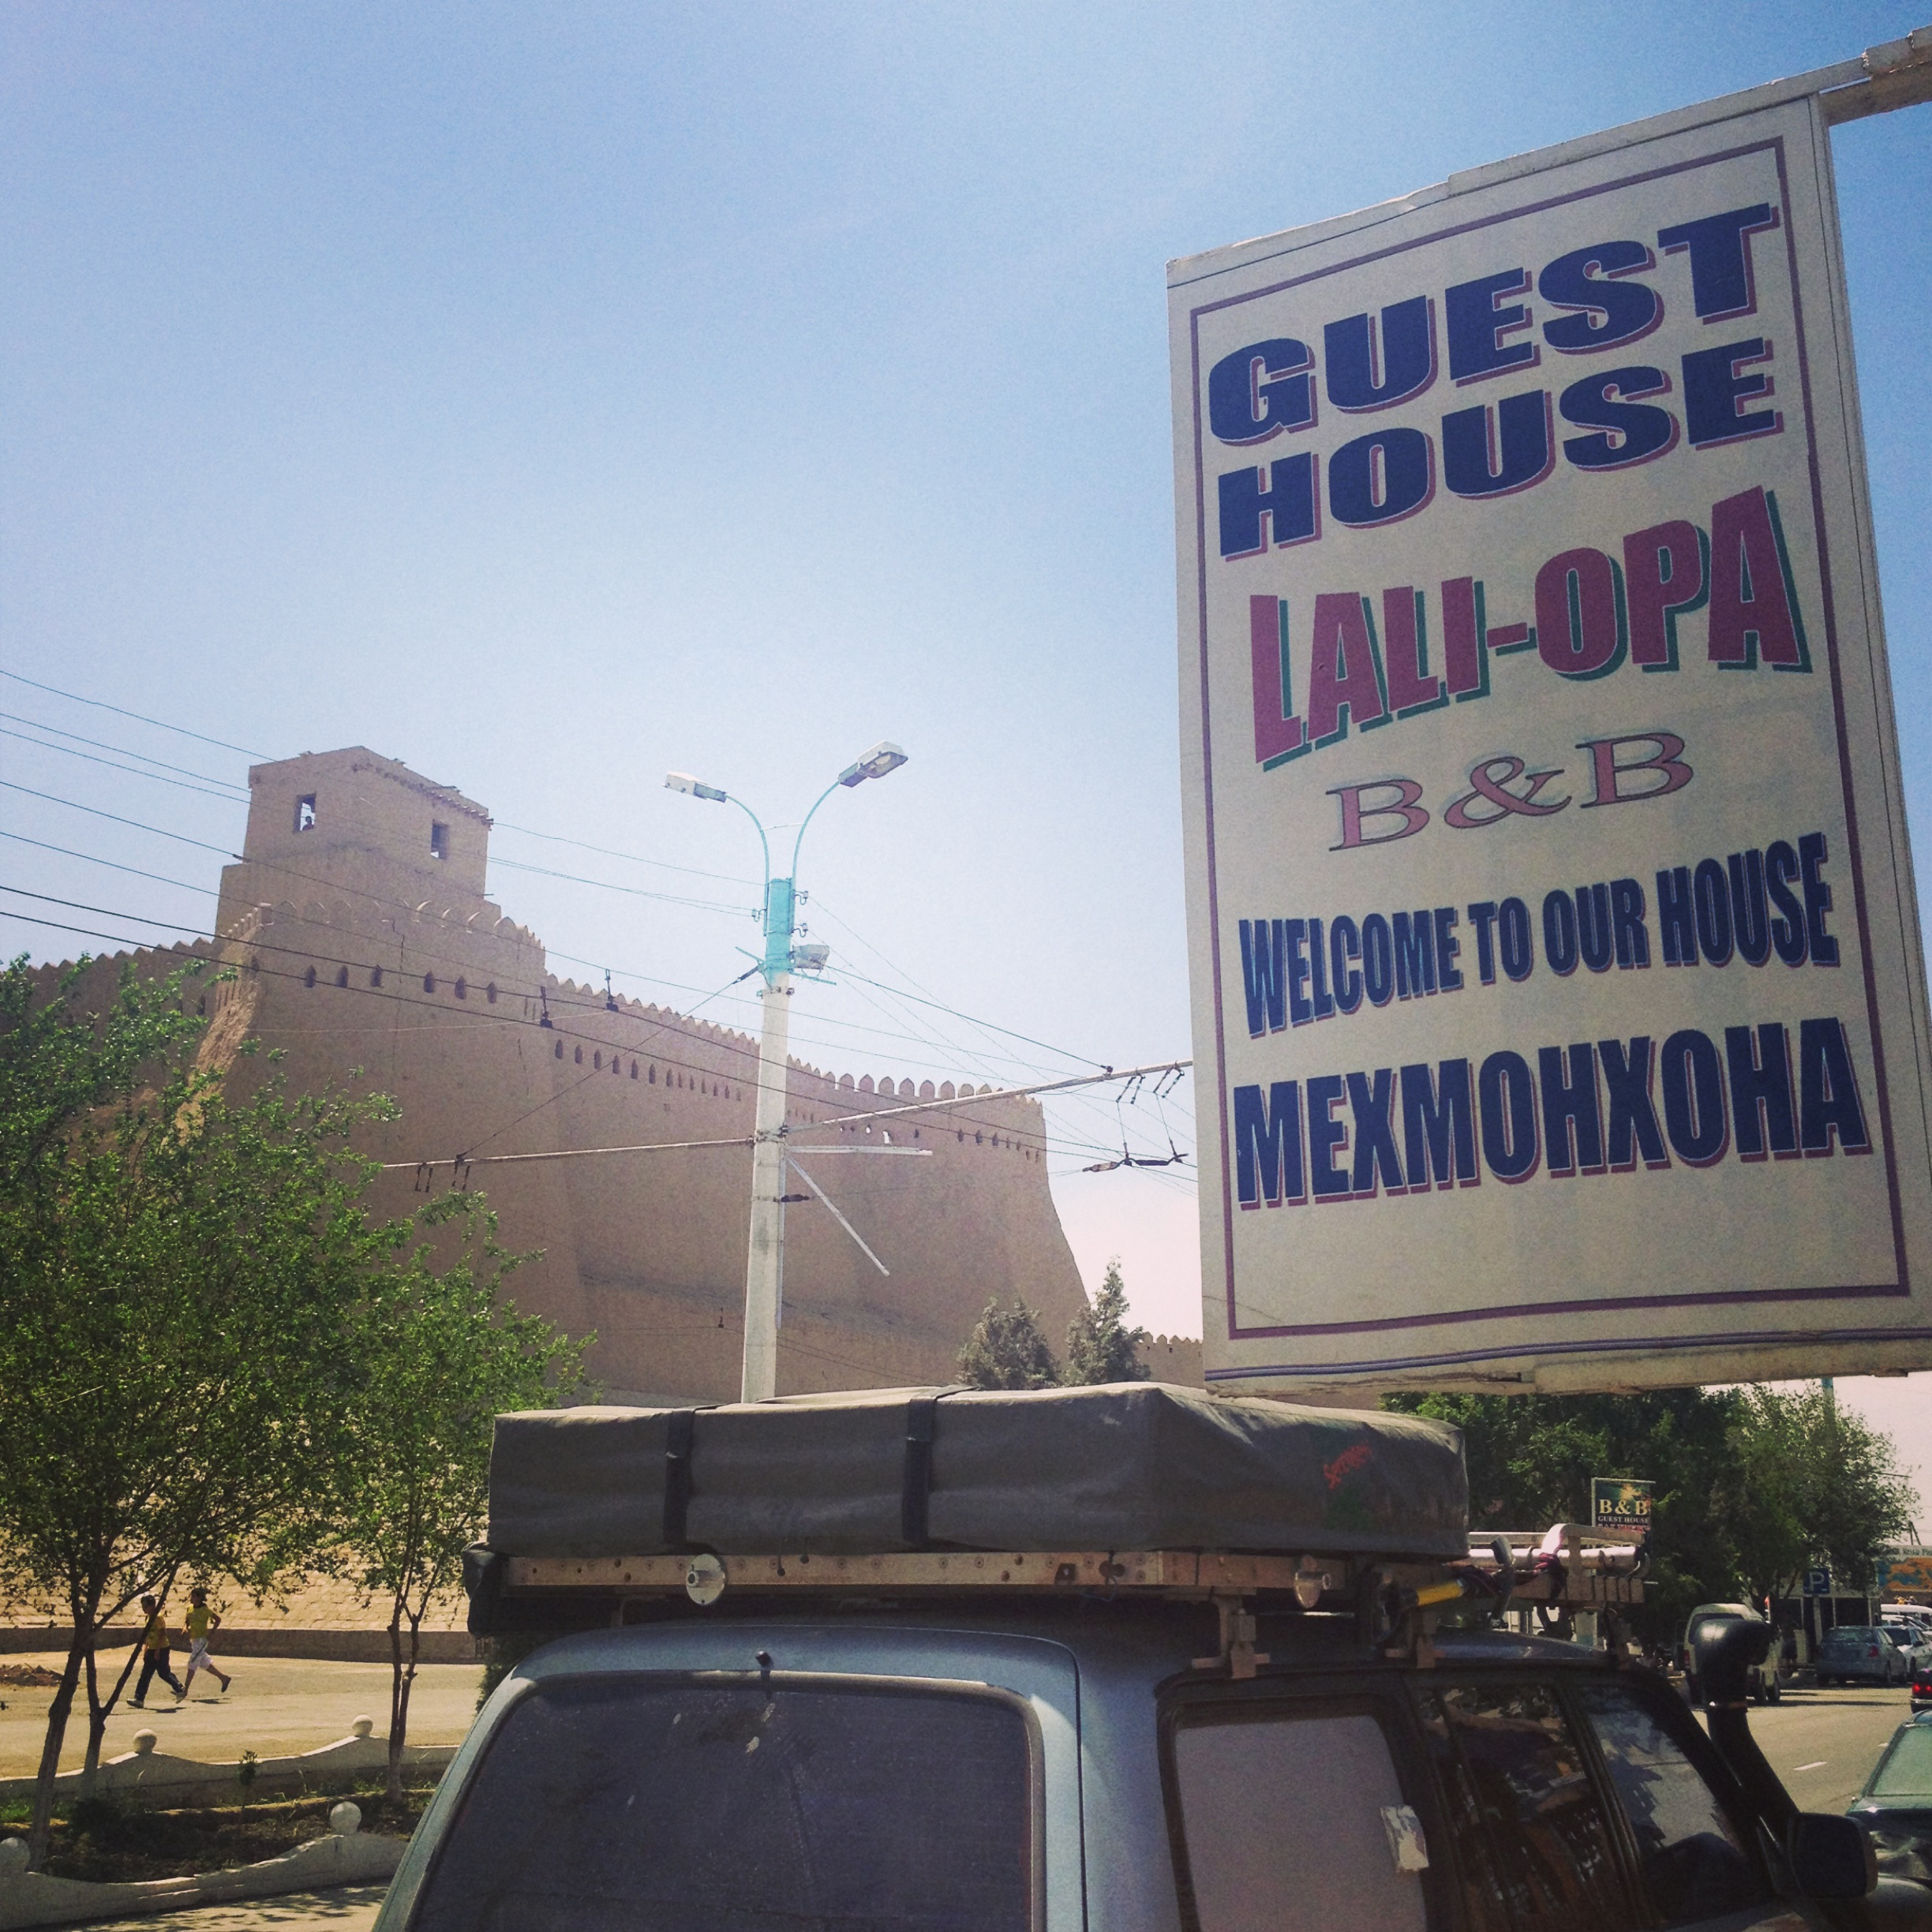 Lali-Opa with Khiva Old Town wall in the background